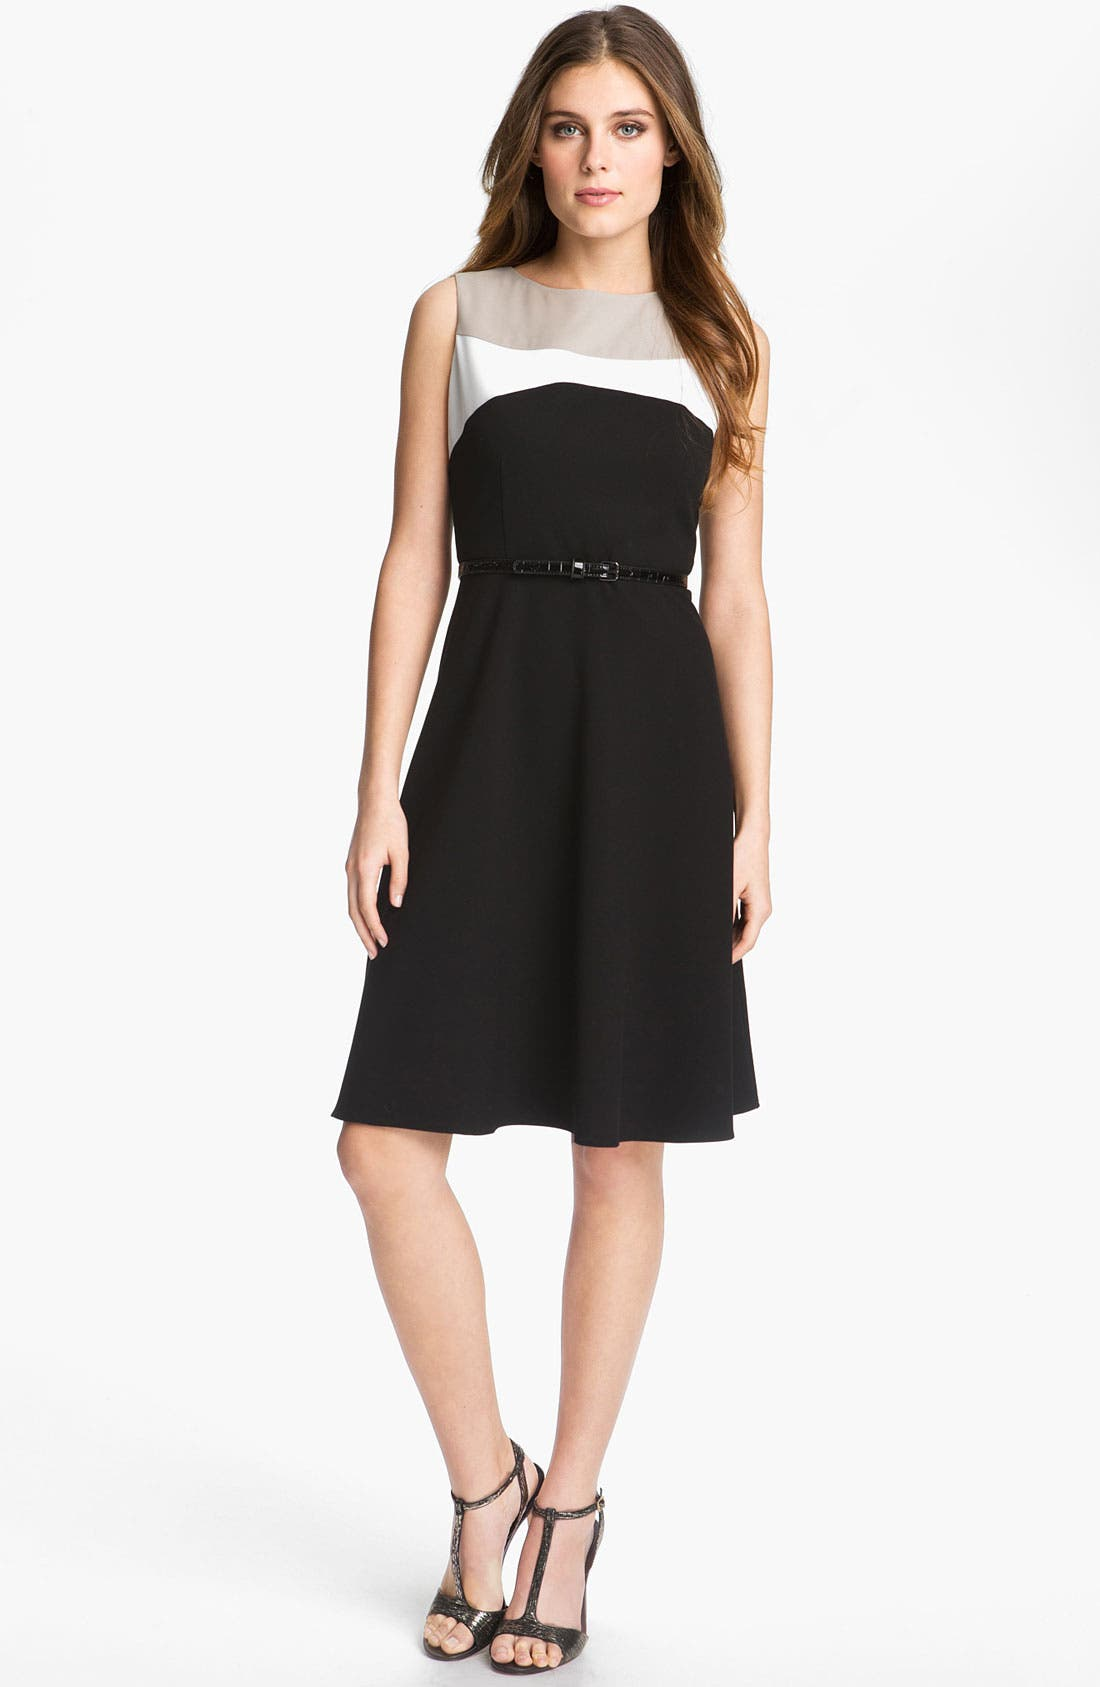 Alternate Image 1 Selected - Calvin Klein Colorblock Fit & Flare Dress